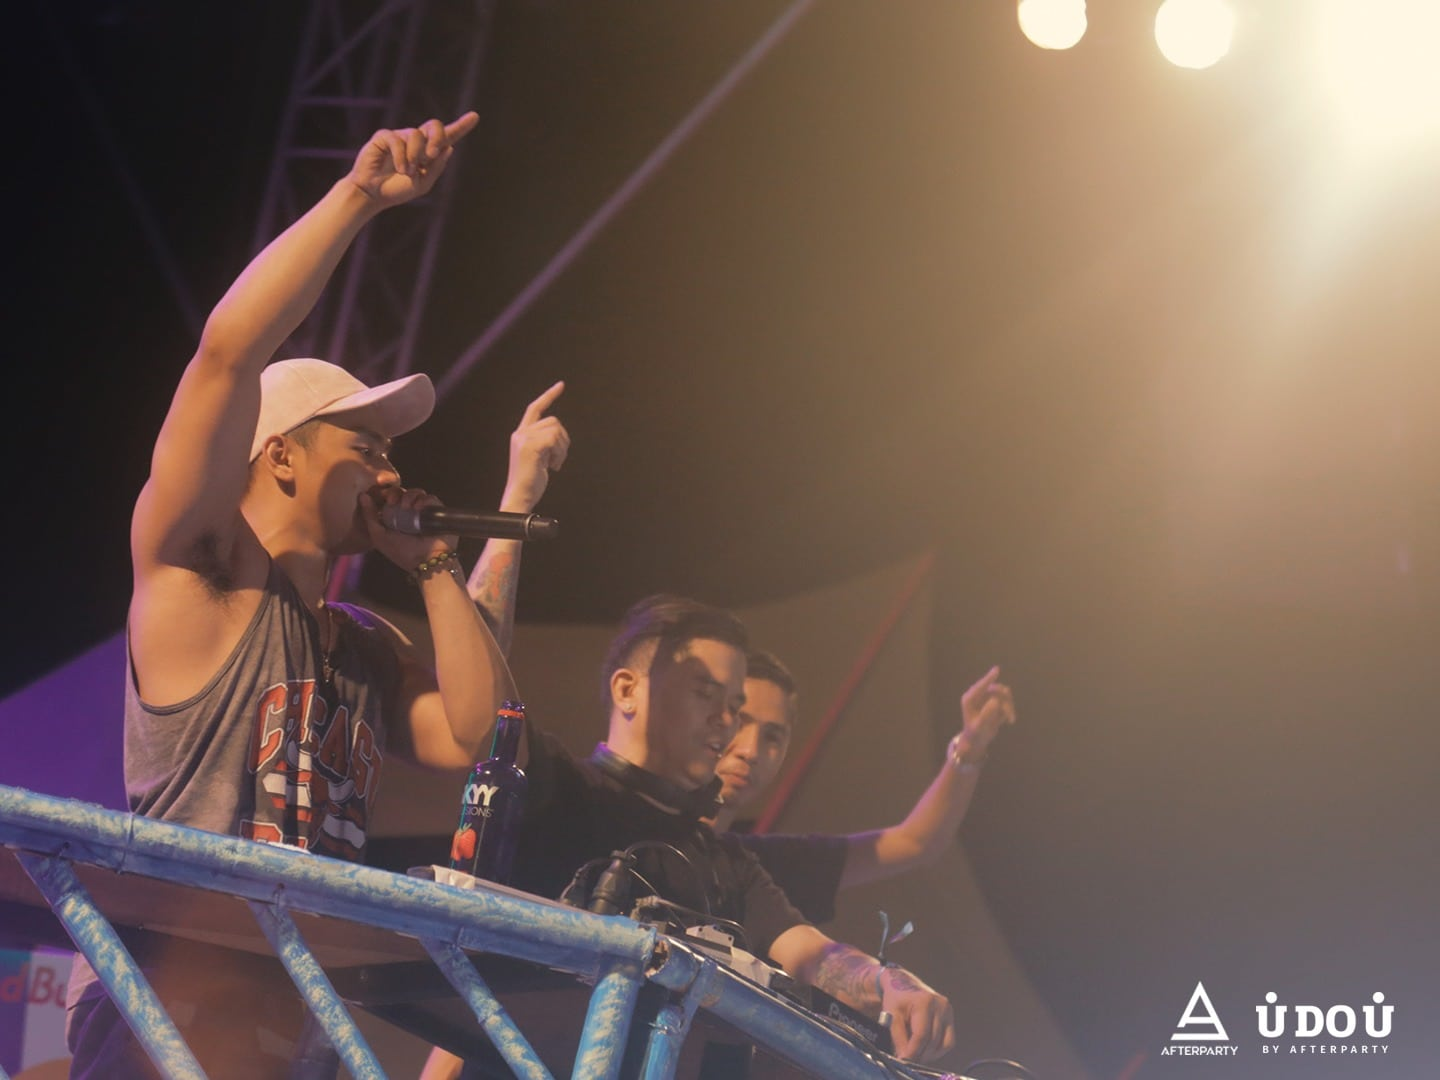 Victor Pring and DJ X Factor performing at Summer Siren 2017